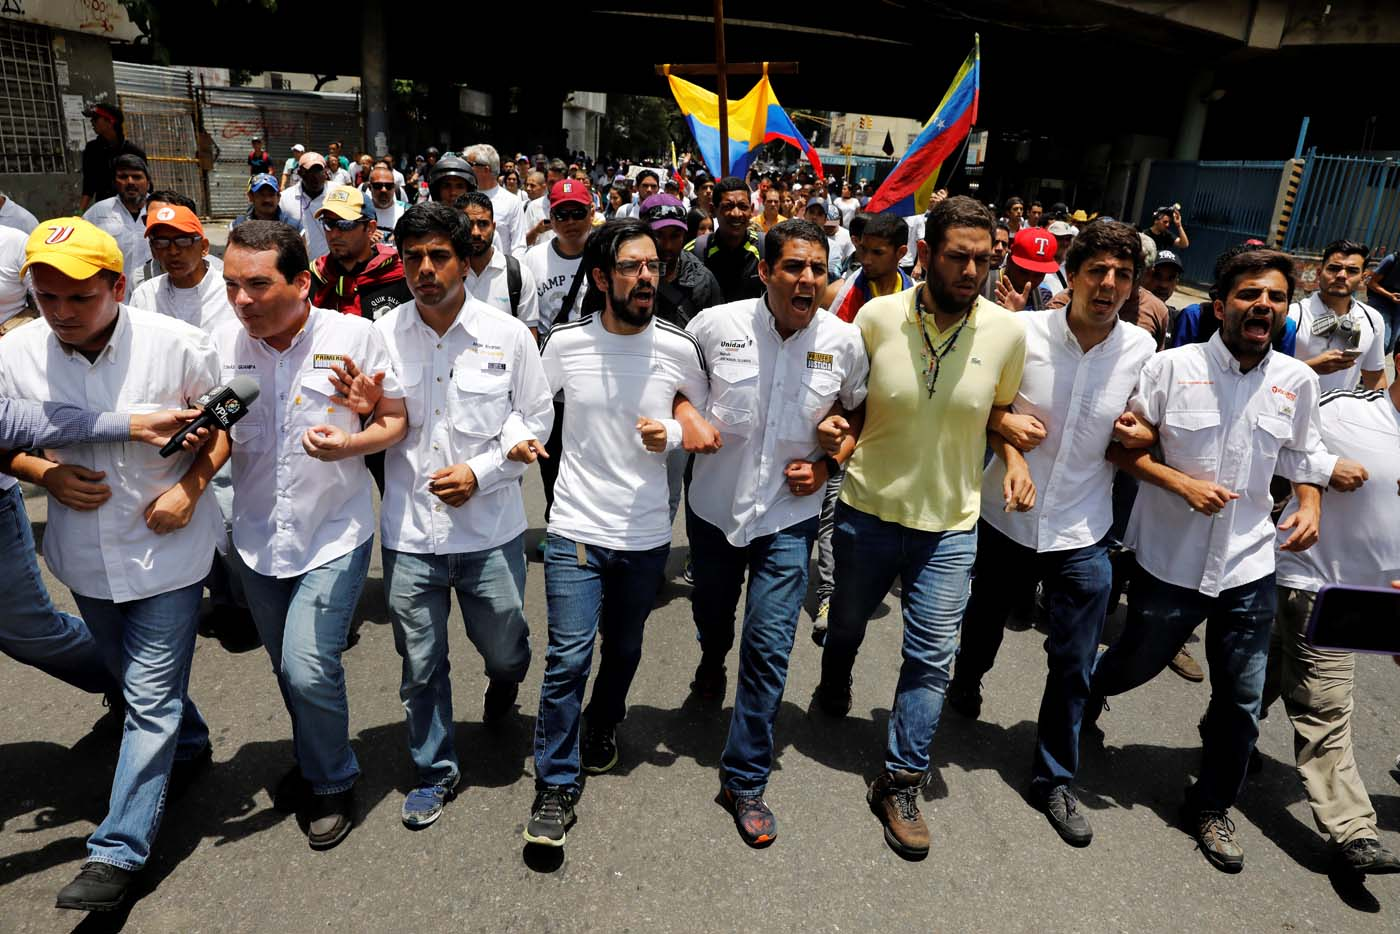 Lawmakers and political leaders take part in a rally to honour victims of violence during a protest against Venezuela's President Nicolas Maduro's government in Caracas, Venezuela, April 22, 2017. REUTERS/Carlos Garcia Rawlins